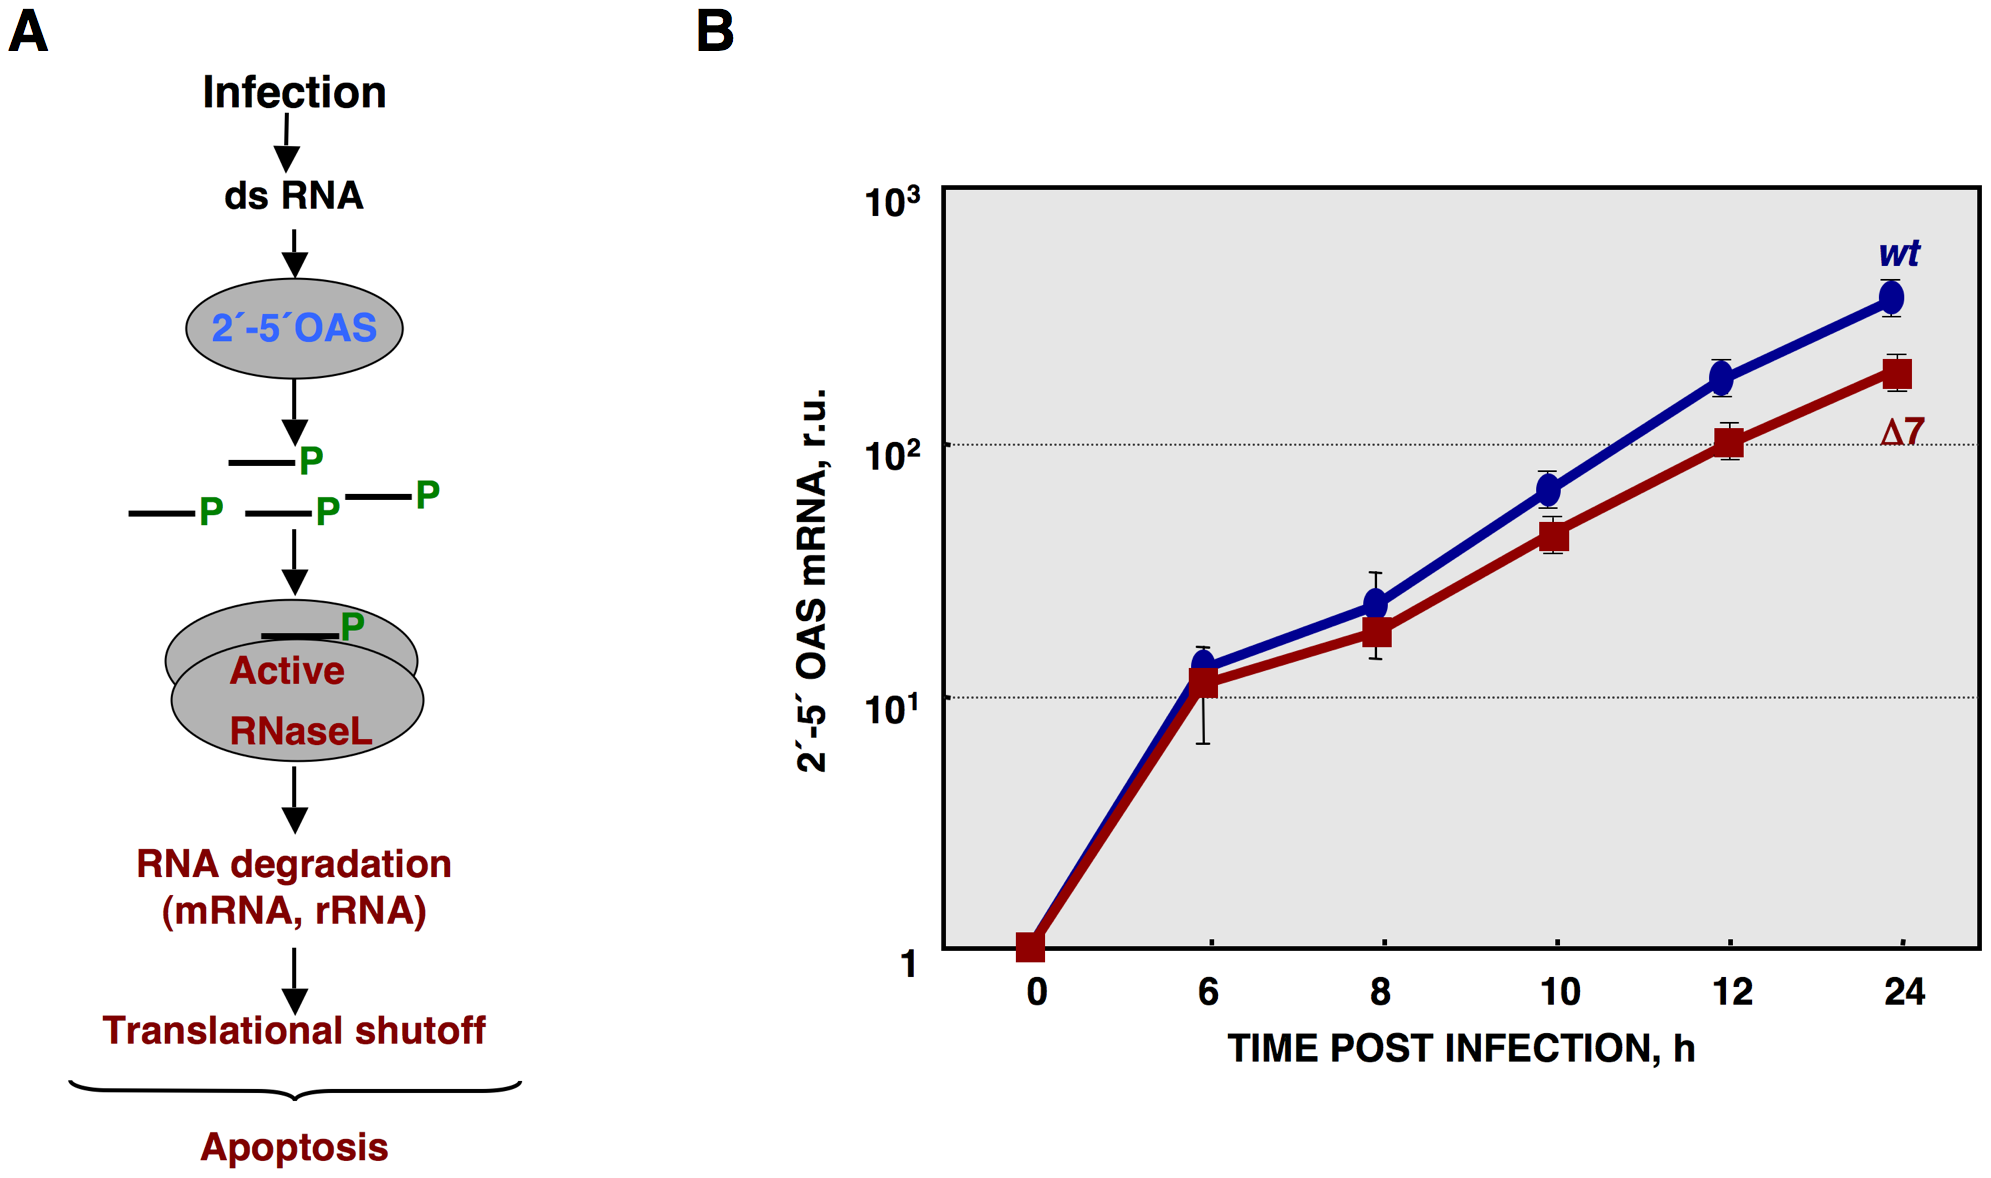 Quantification of 2′-5′OAS expression during rTGEV infection.